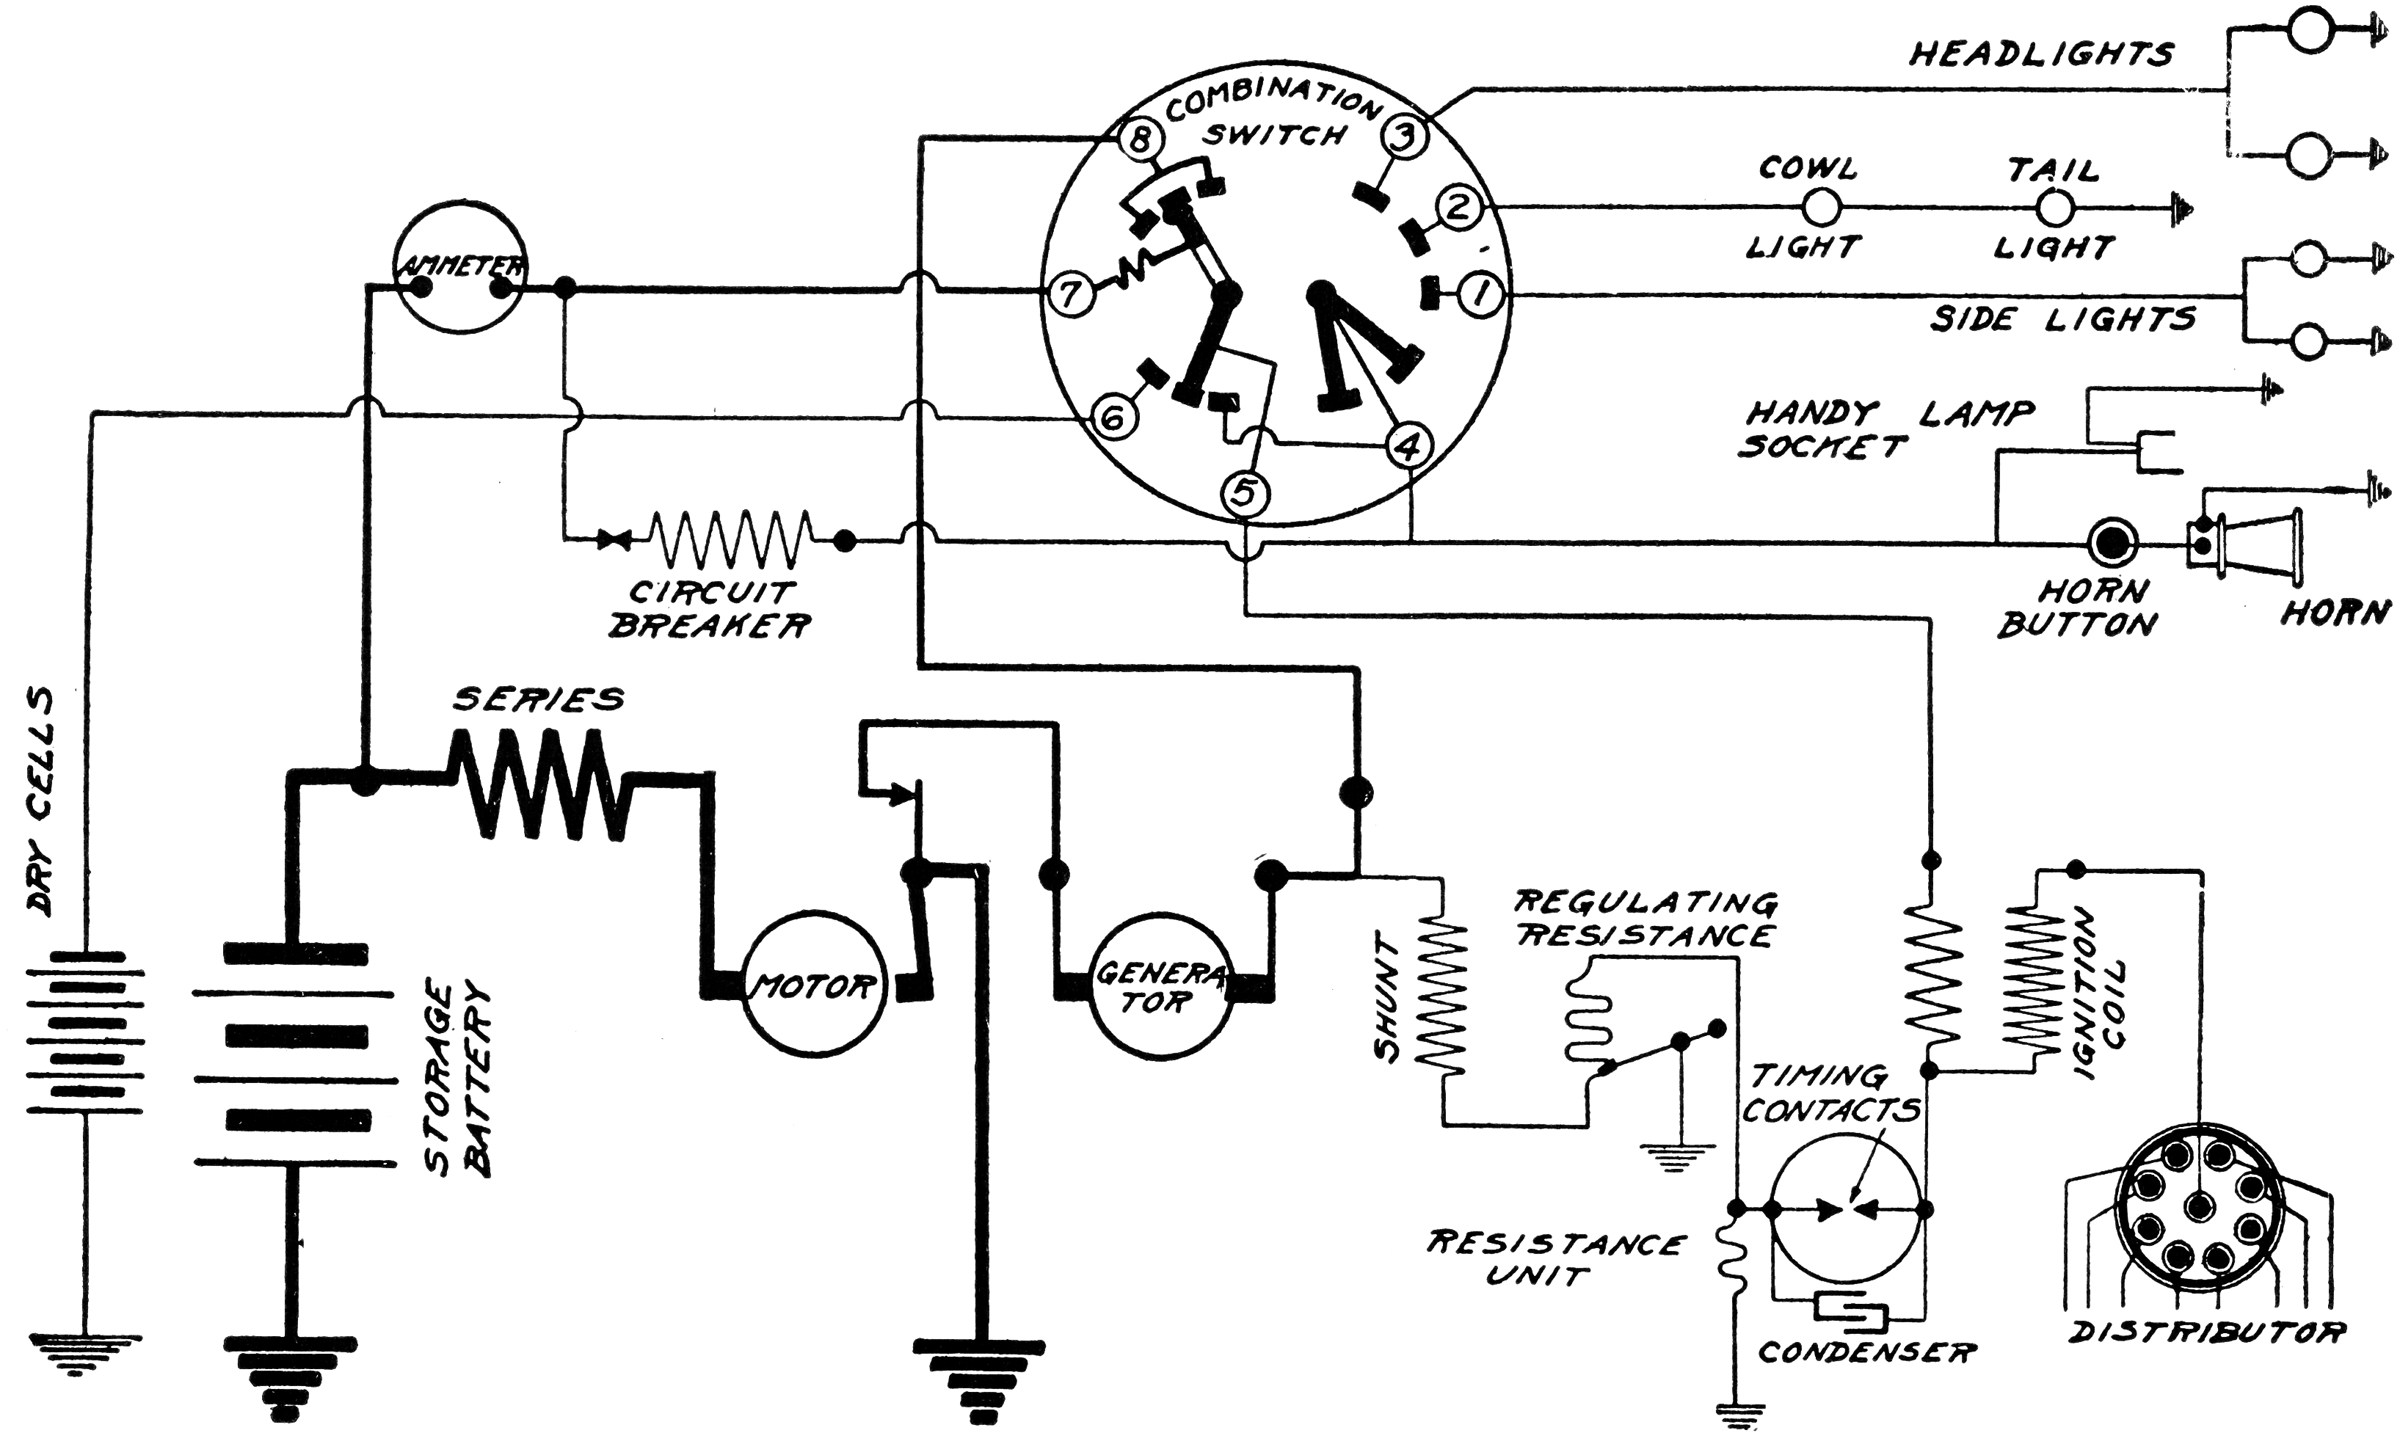 delco remy generator wiring diagram 1989 ford f150 starter solenoid get free image about